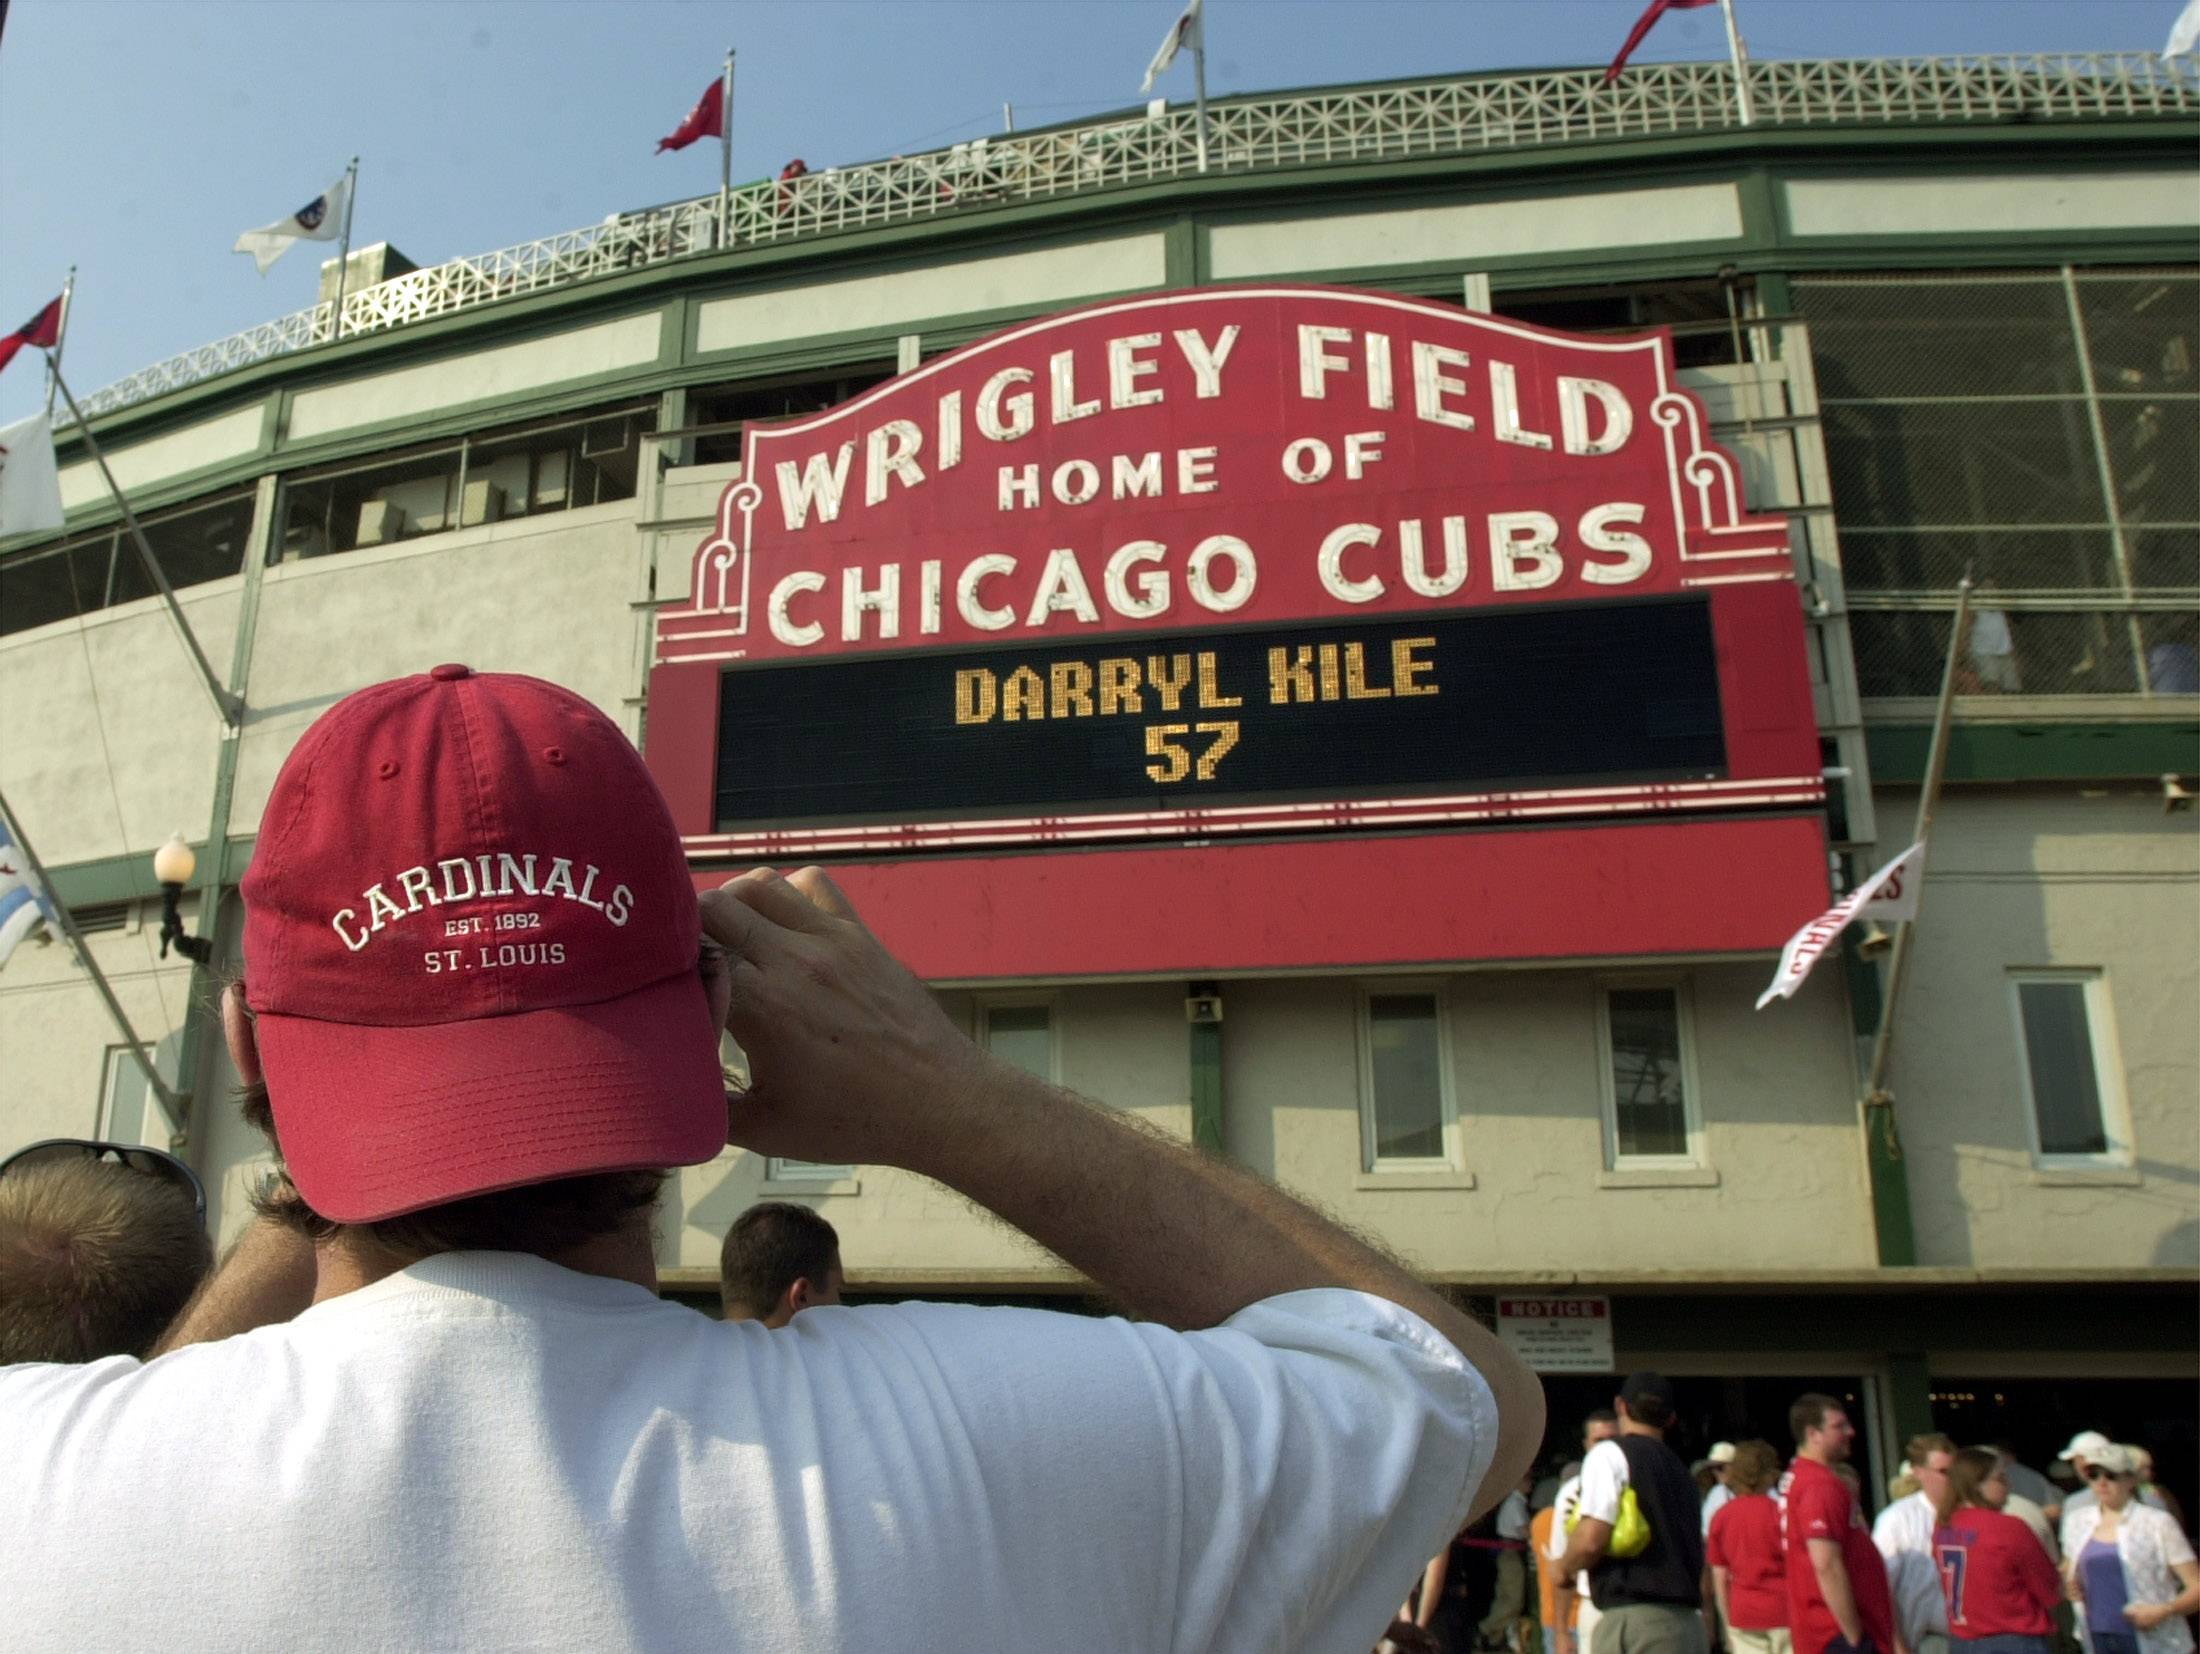 A St. Louis Cardinals fan takes a picture of the Wrigley Field marquee before a game against the Chicago Cubs.